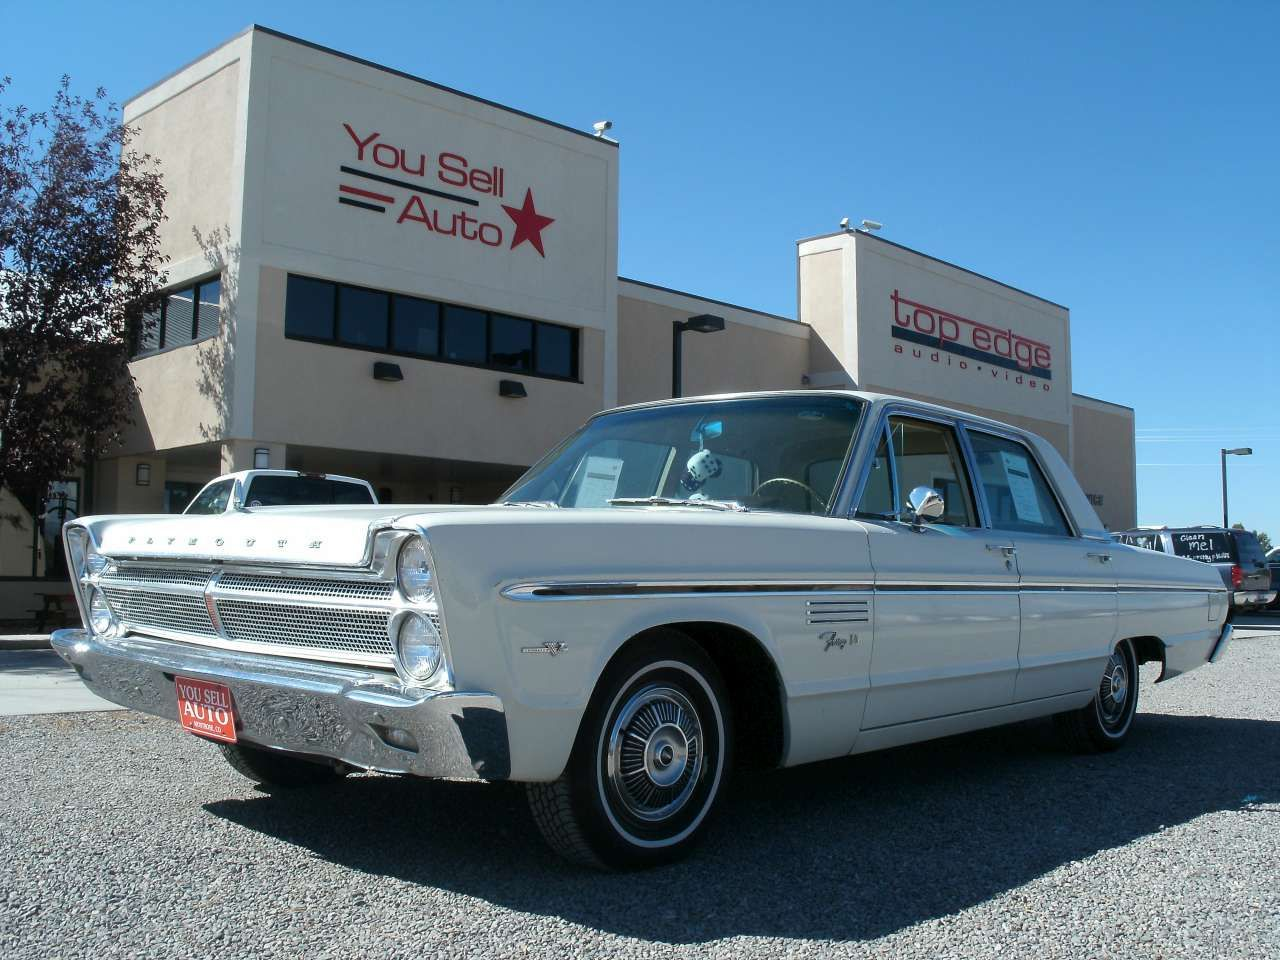 You Sell Auto 1965 Plymouth Fury Iii 383 5 600 Plymouth Fury Plymouth Fury